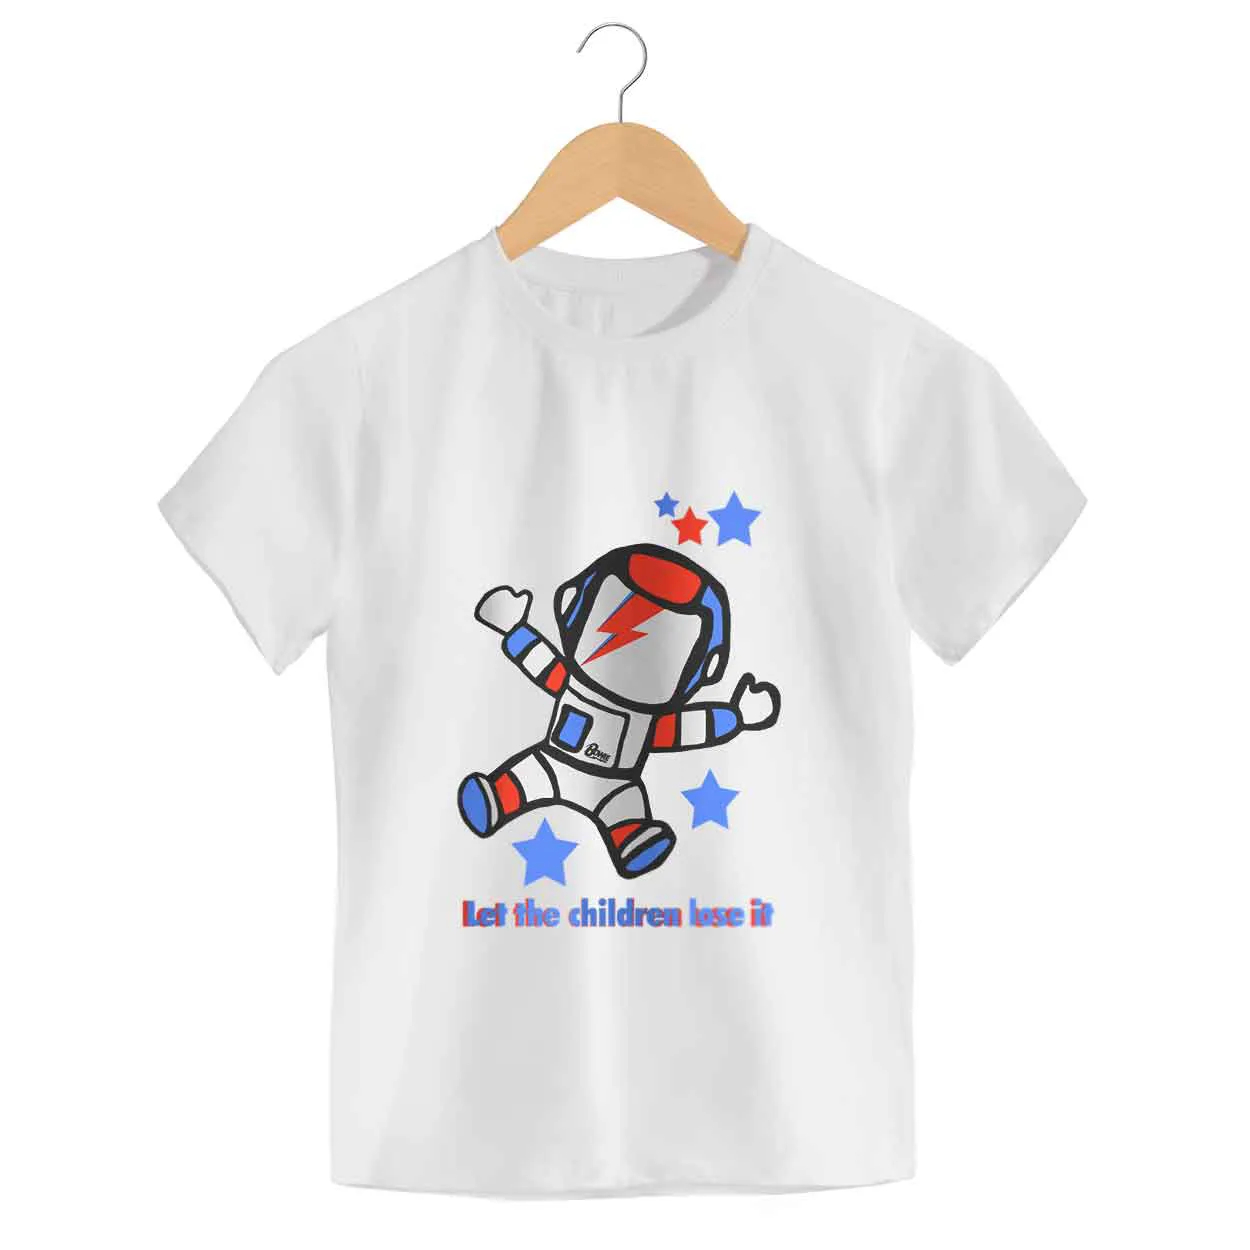 Camiseta - Let The Children Lose It - Infantil